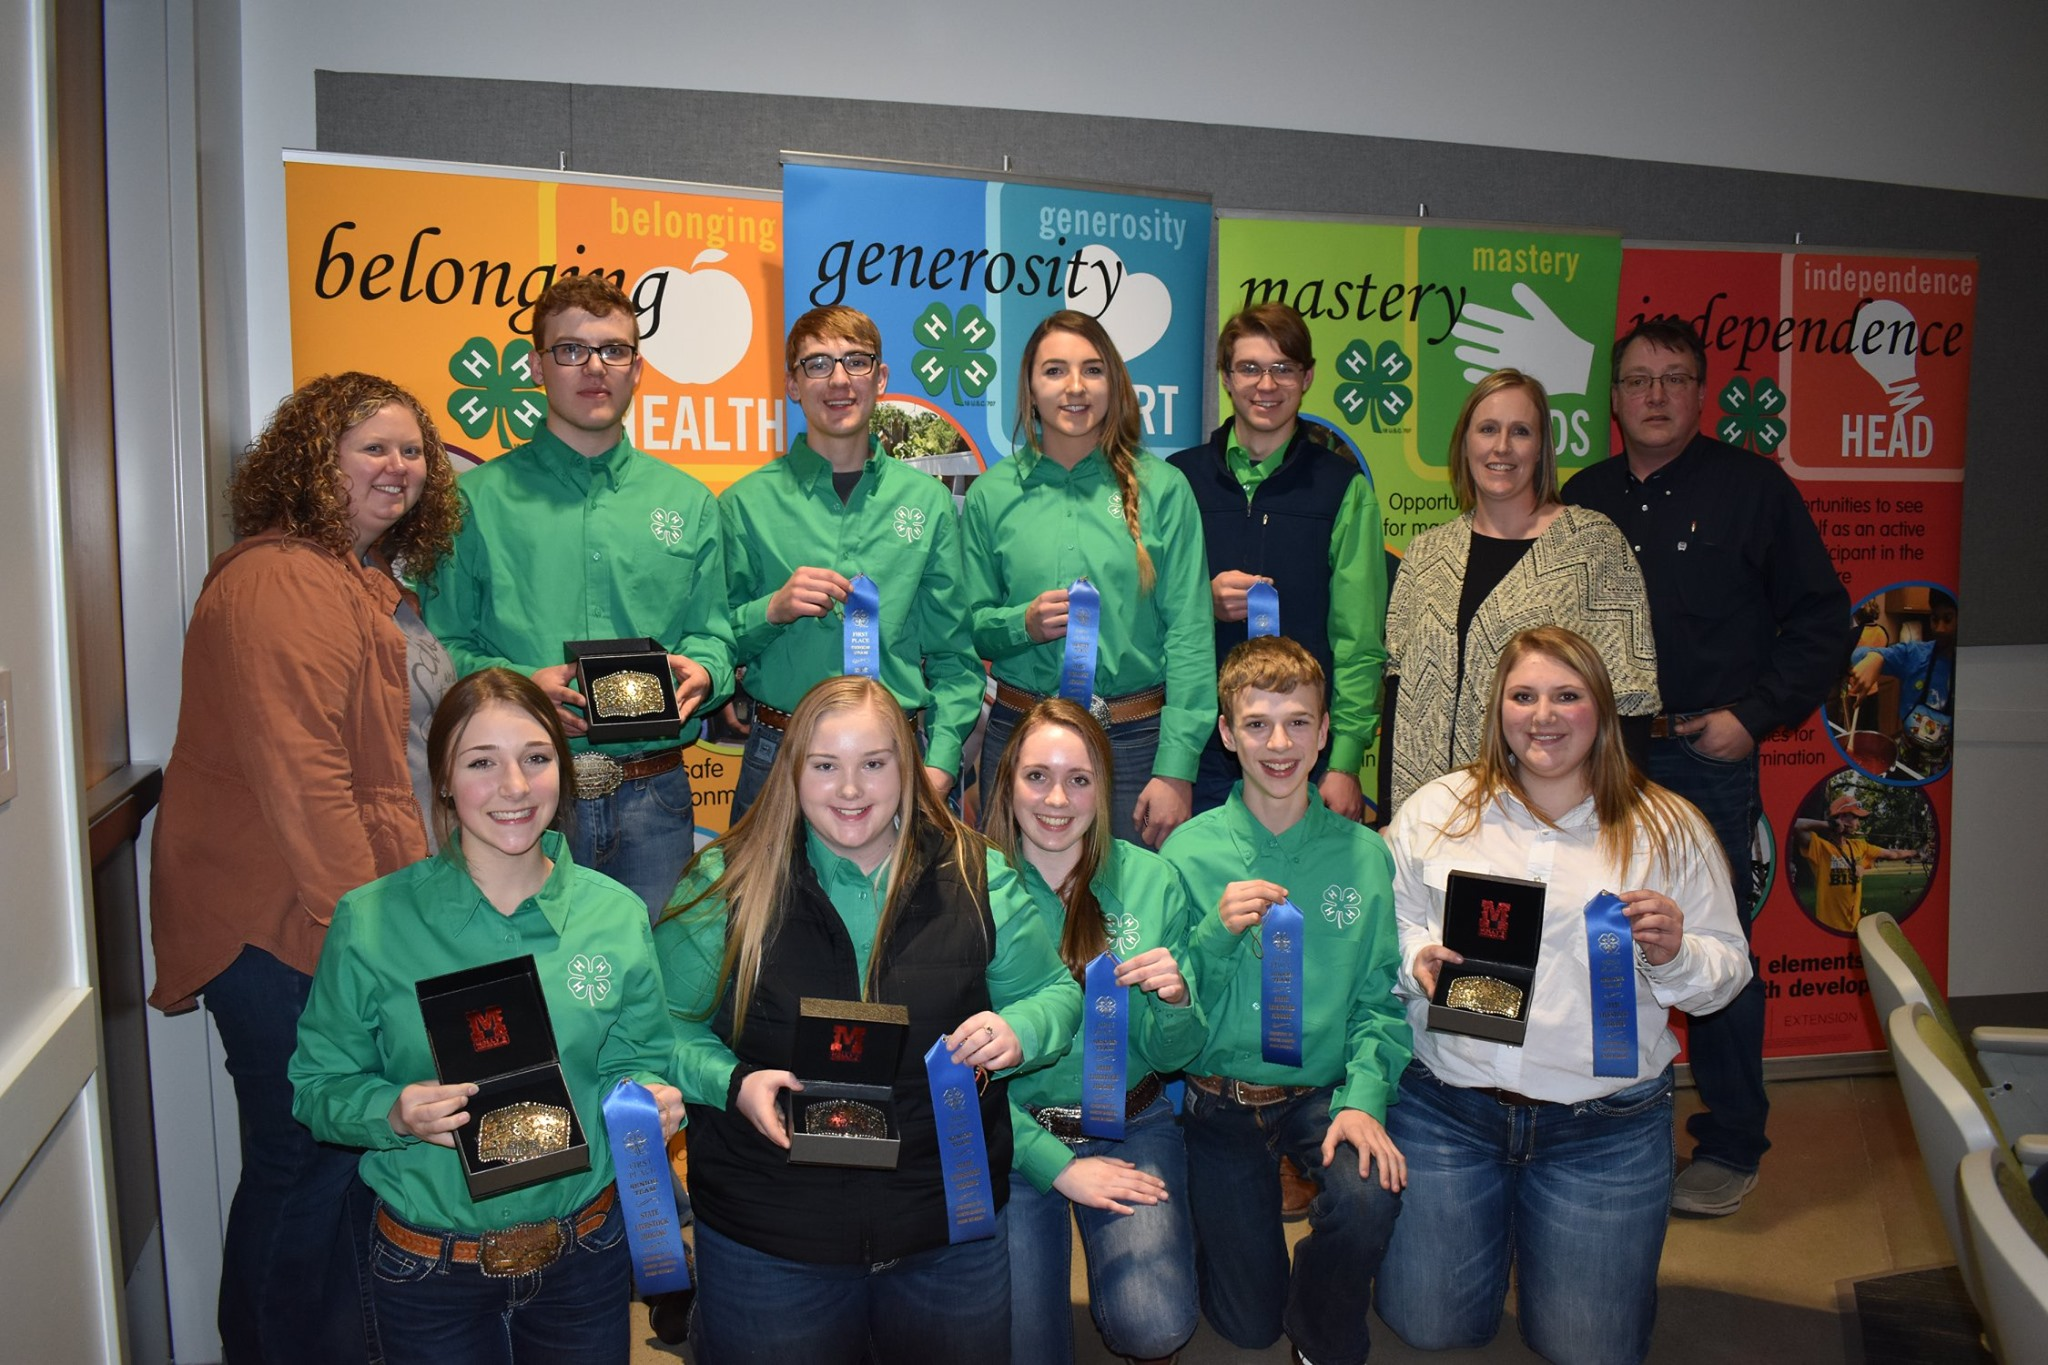 The Mountrail County 4-H team took first place in the senior division of the North Dakota state 4-H livestock judging contest. Pictured are (back row from left): Bailey Hawbaker; team members Fletcher Hennessy, Ty Fladeland, Logan Lapica and Kash Lee; Jess Bullinger; and coach Jim Hennessy; (front row from left): team members Calli Hennessy, Mariah Braasch, Kyra Fox, Jacob Littlefield and Morgan Vachal. (NDSU photo)